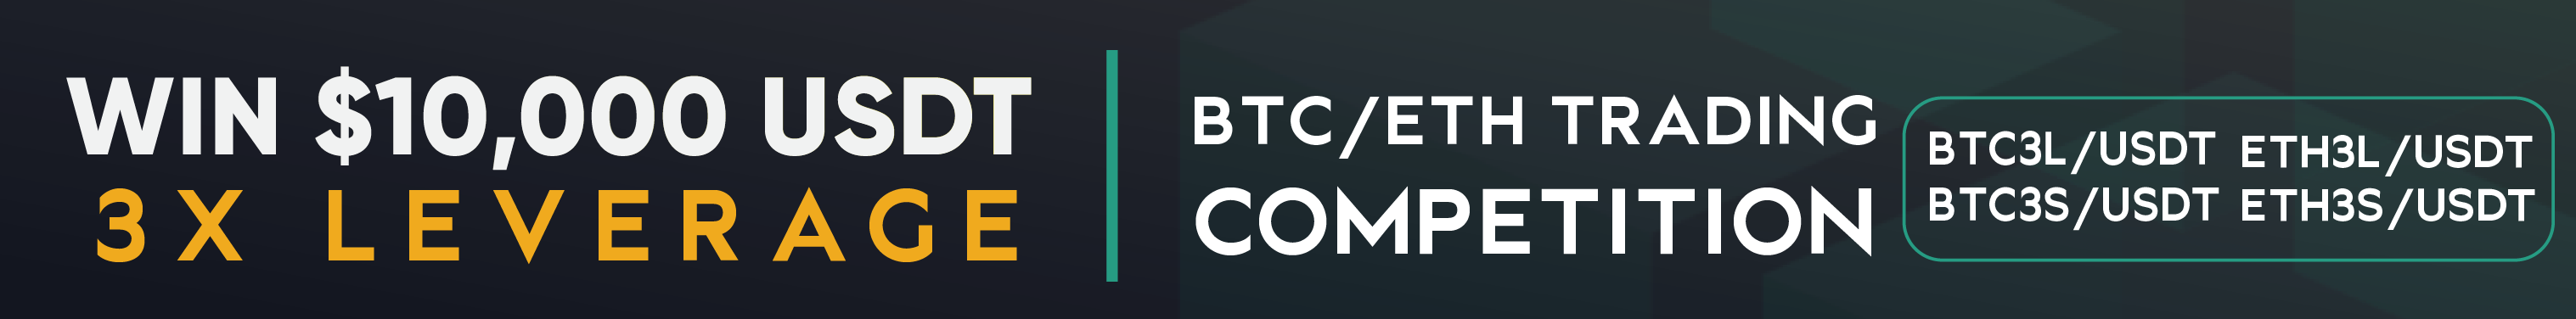 AMUN leverage BTC/ETH trading competition